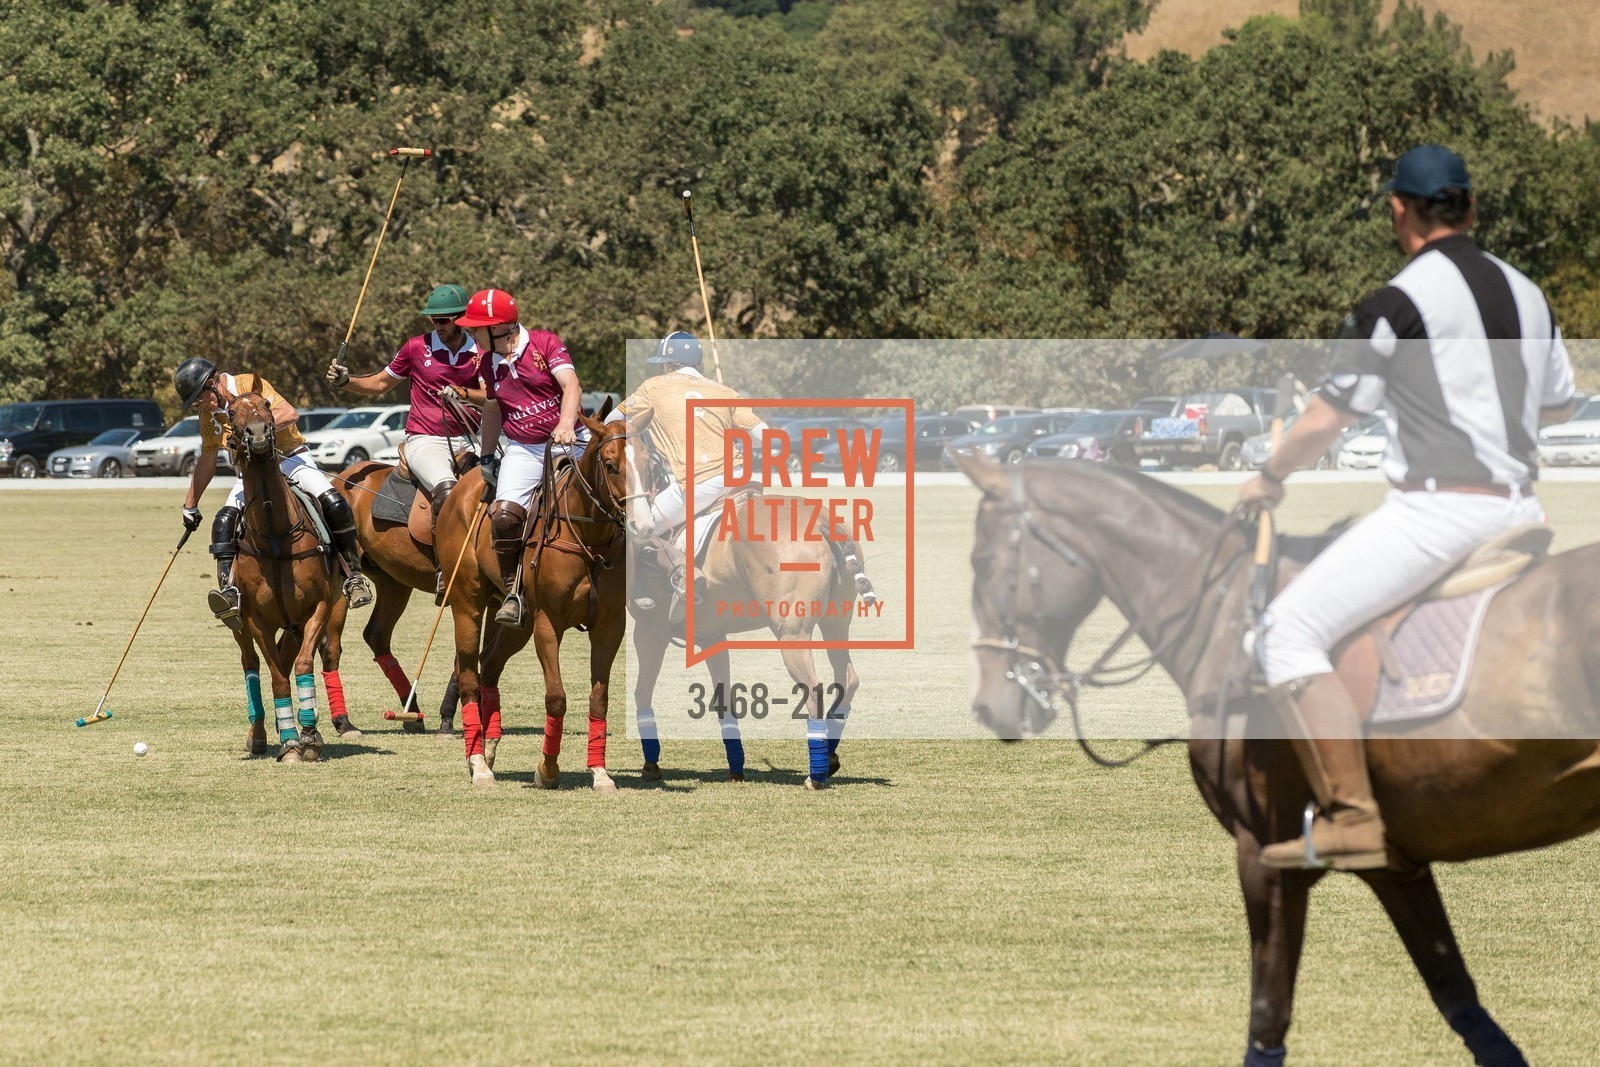 Polo Match, Photo #3468-212